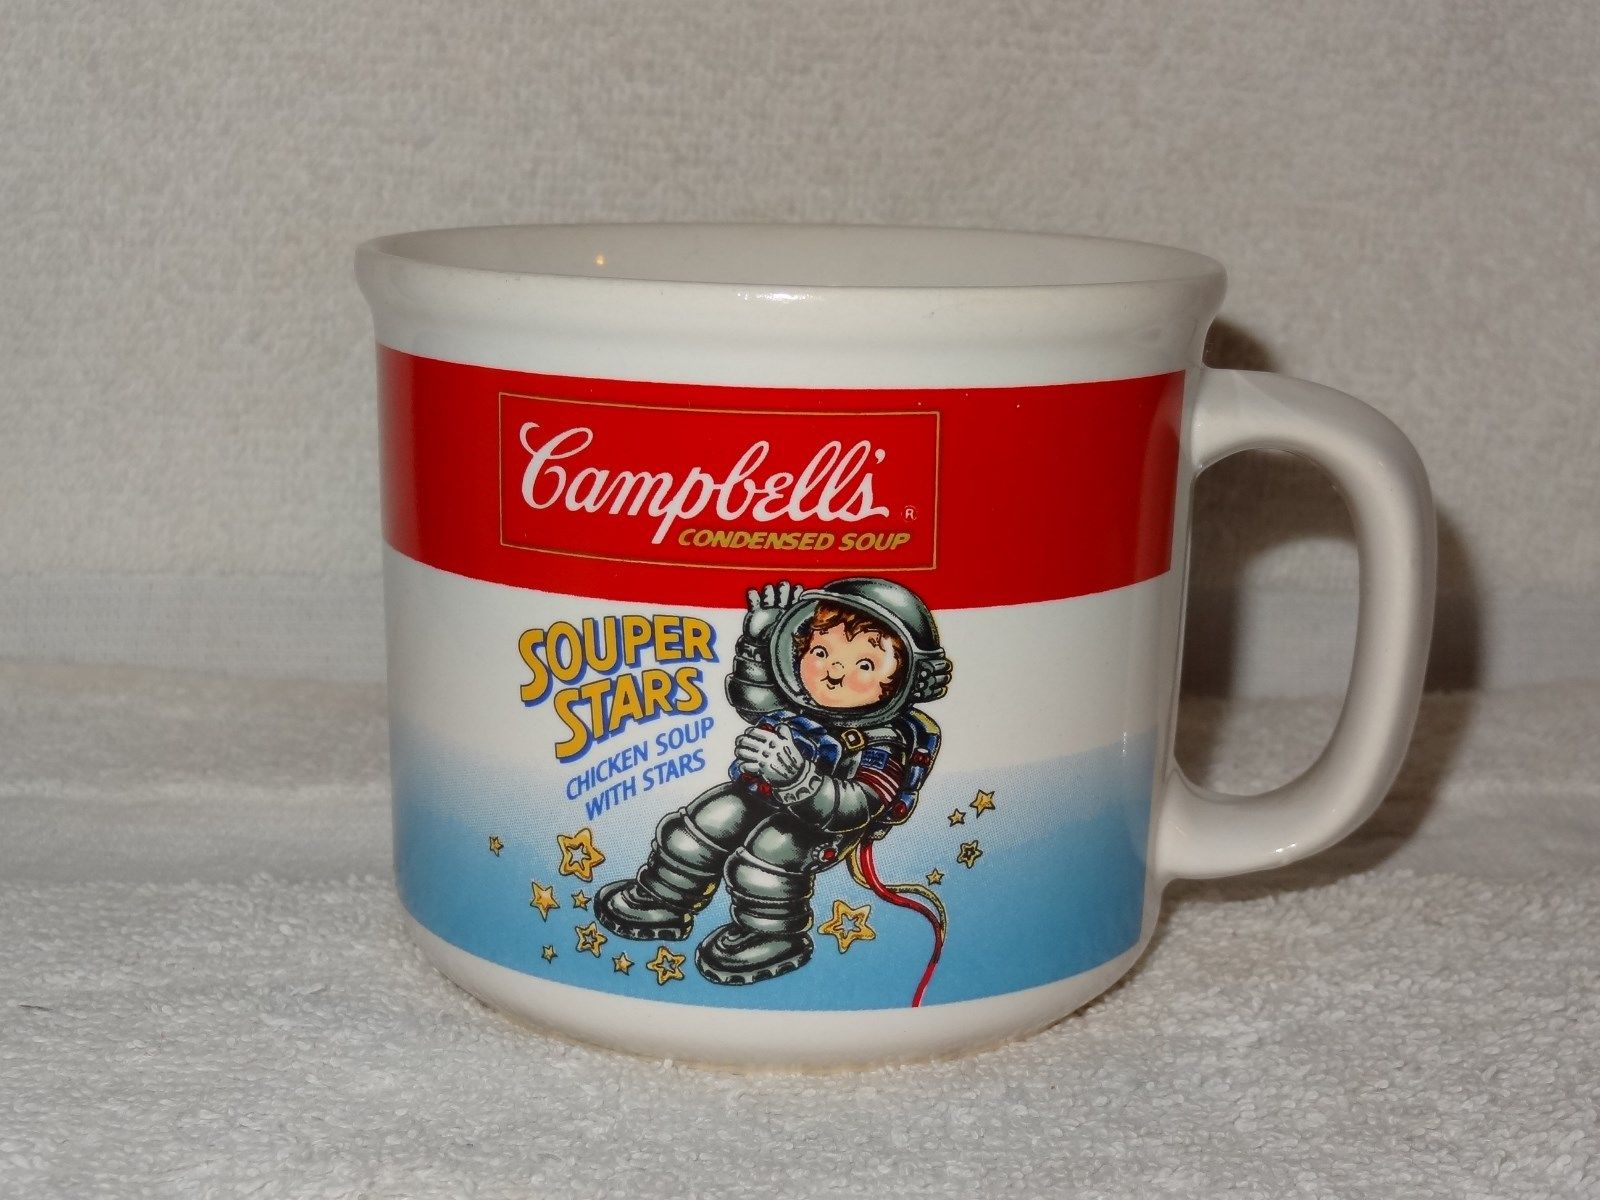 Campbell ' s Soup Souper Stars Chicken With Stars Mug - Boy Astronaut - 1990